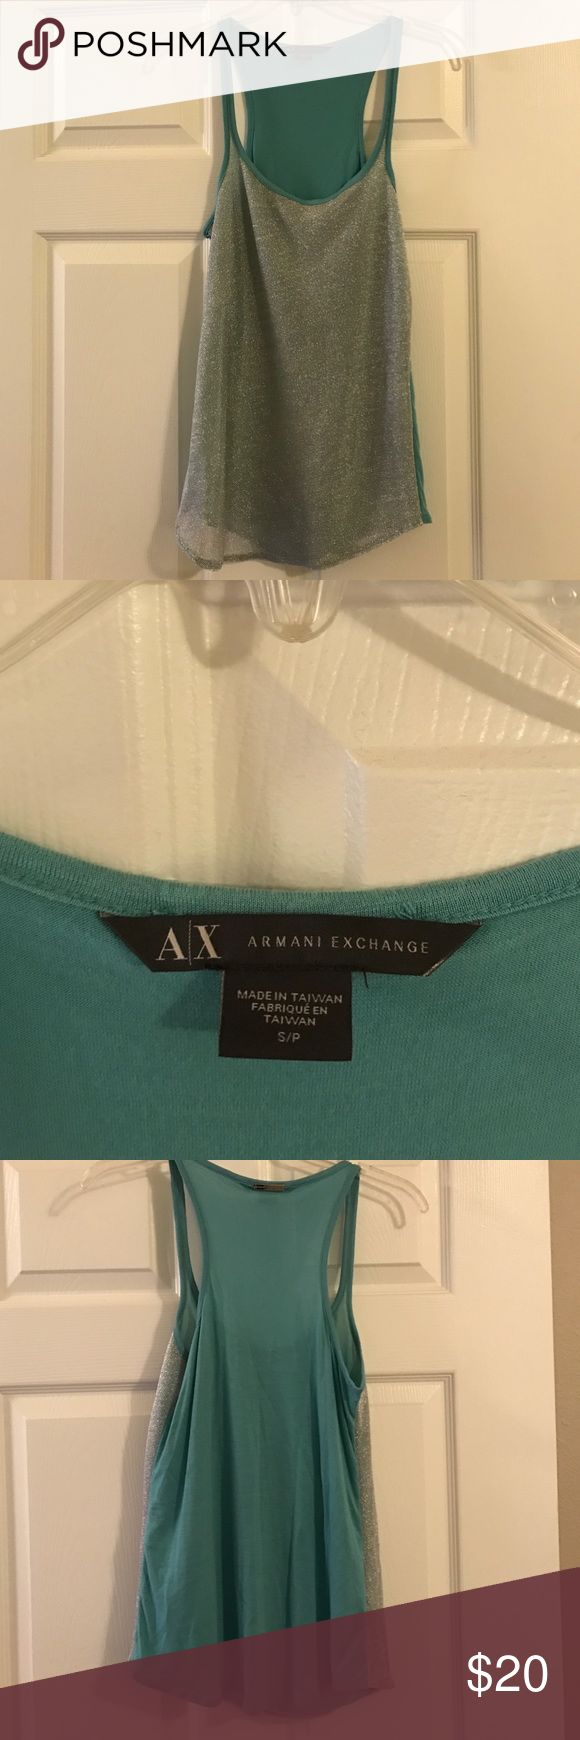 Armani Exchange silver/teal mesh overlay tank Super chic tank, never worn, looks cute with leather or liquid leggings for a night out or jeans for day. Metal logo on back. A/X Armani Exchange Tops Tank Tops